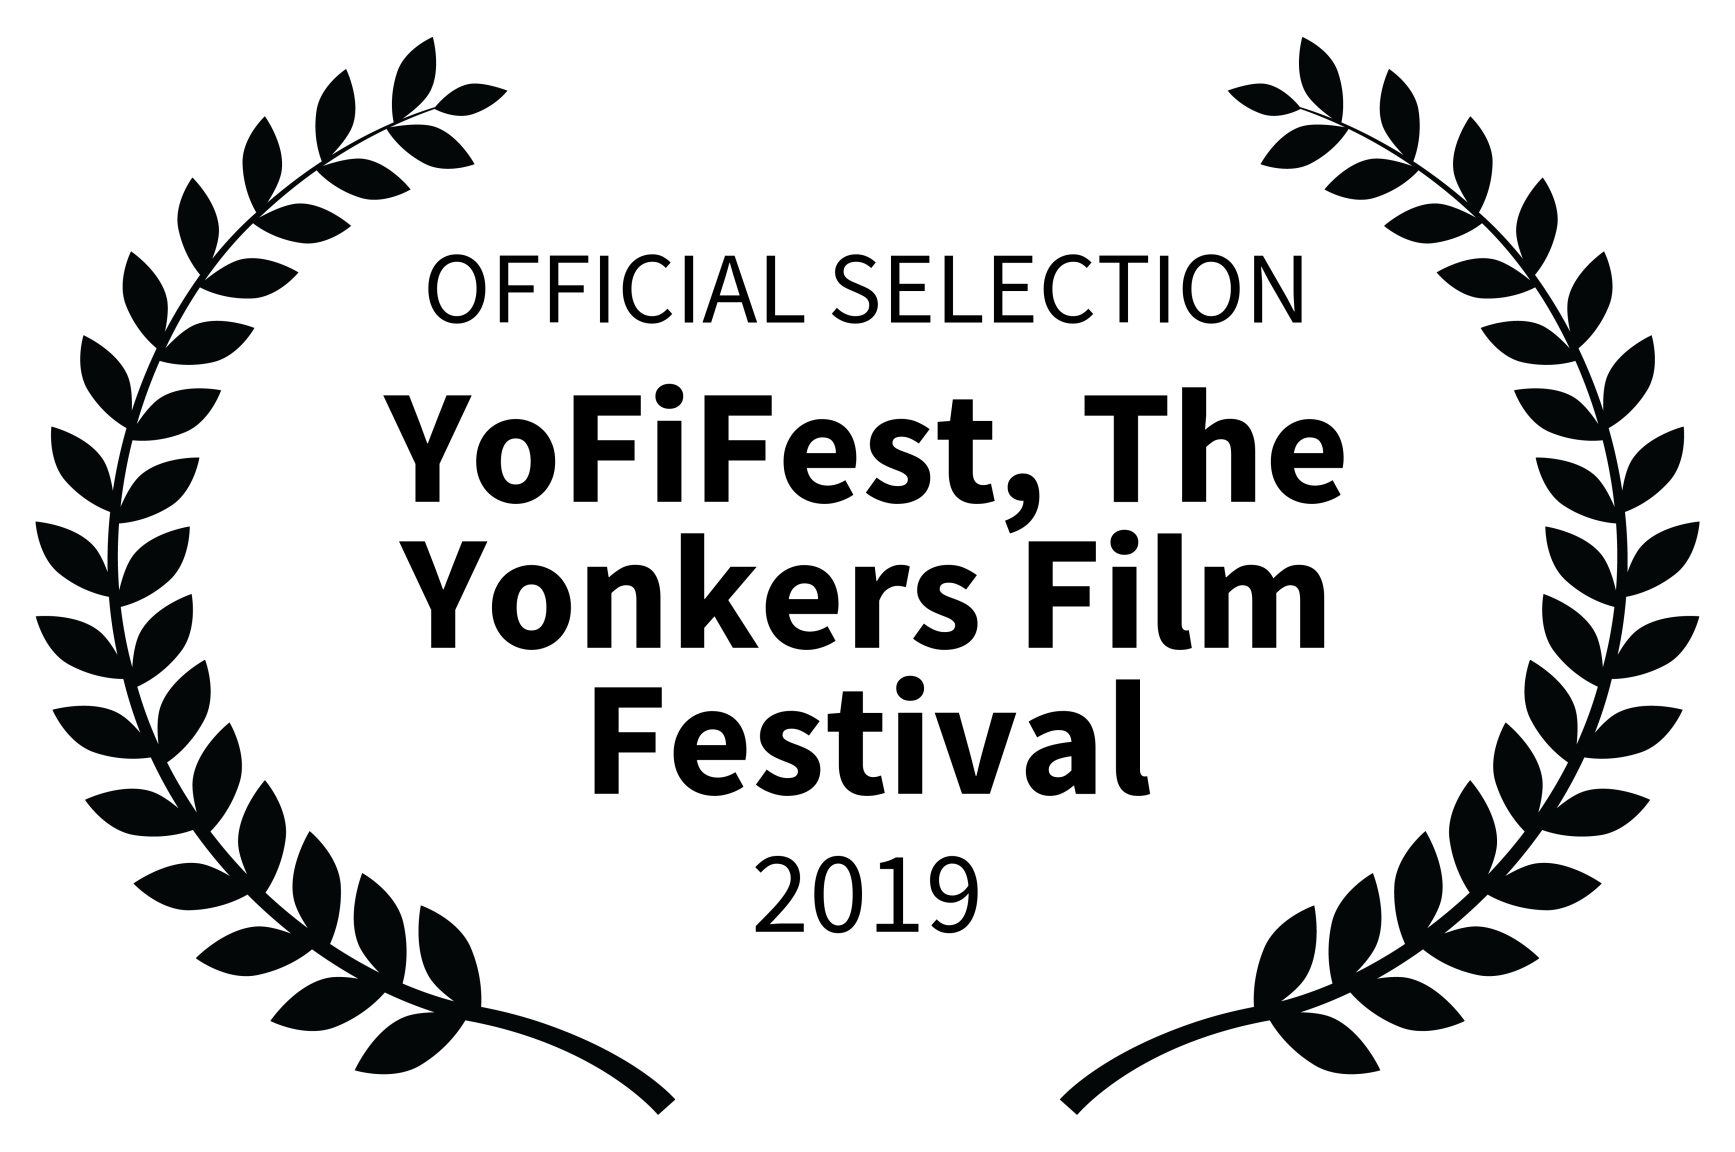 https://tinathemovie.com/wp-content/uploads/2019/09/OFFICIAL-SELECTION-YoFiFest-The-Yonkers-Film-Festival-2019.png